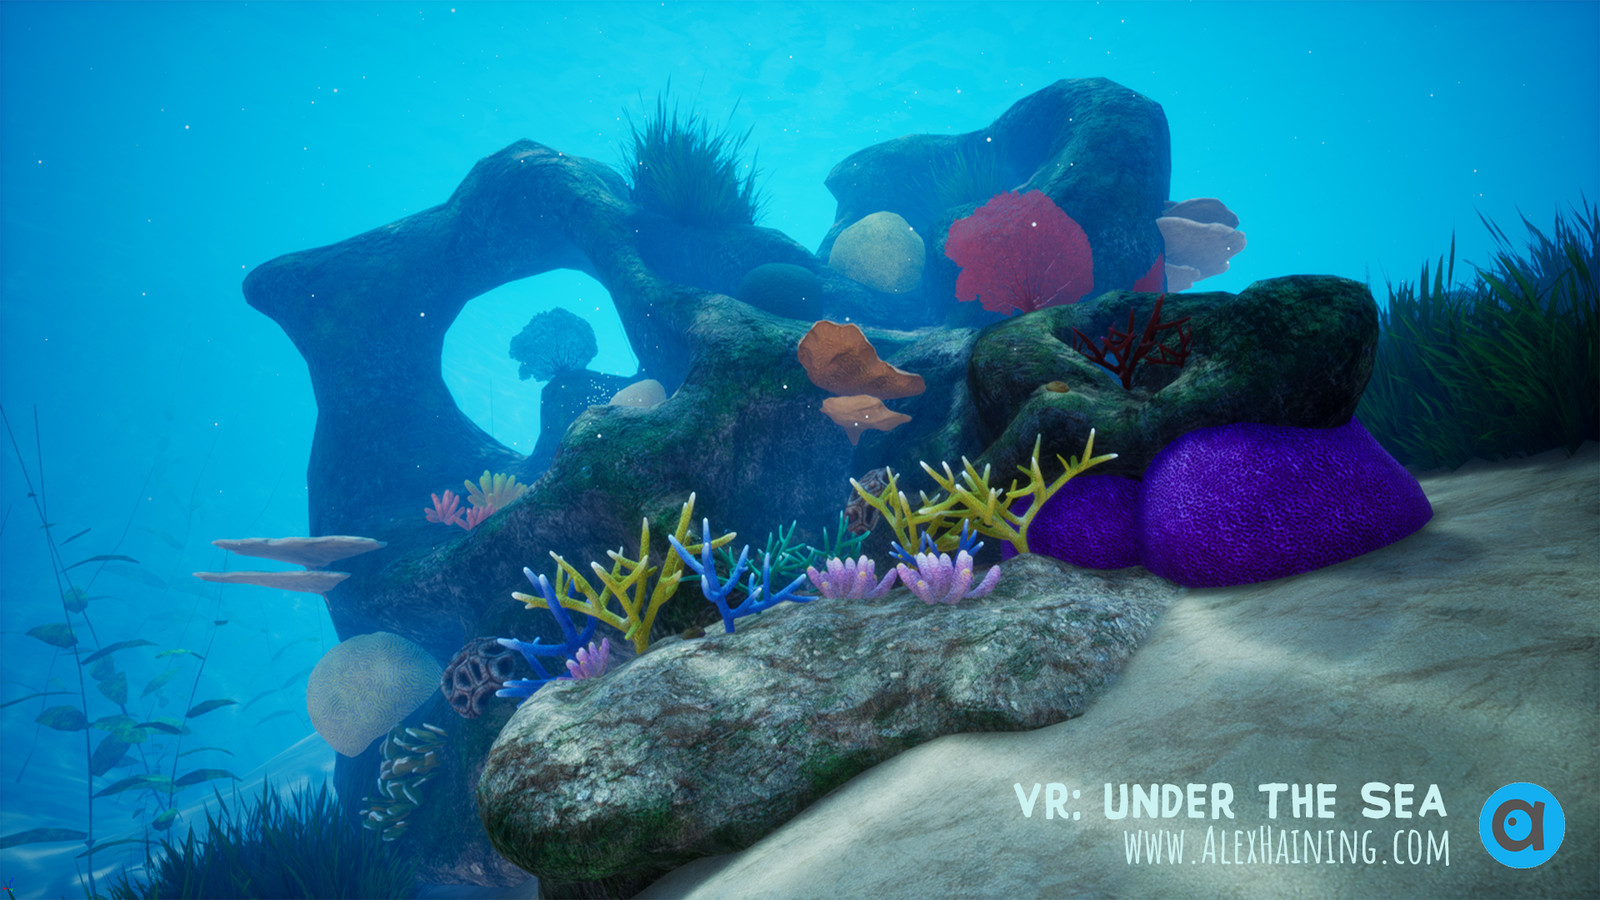 Under the Sea: VR a tool for Conservation